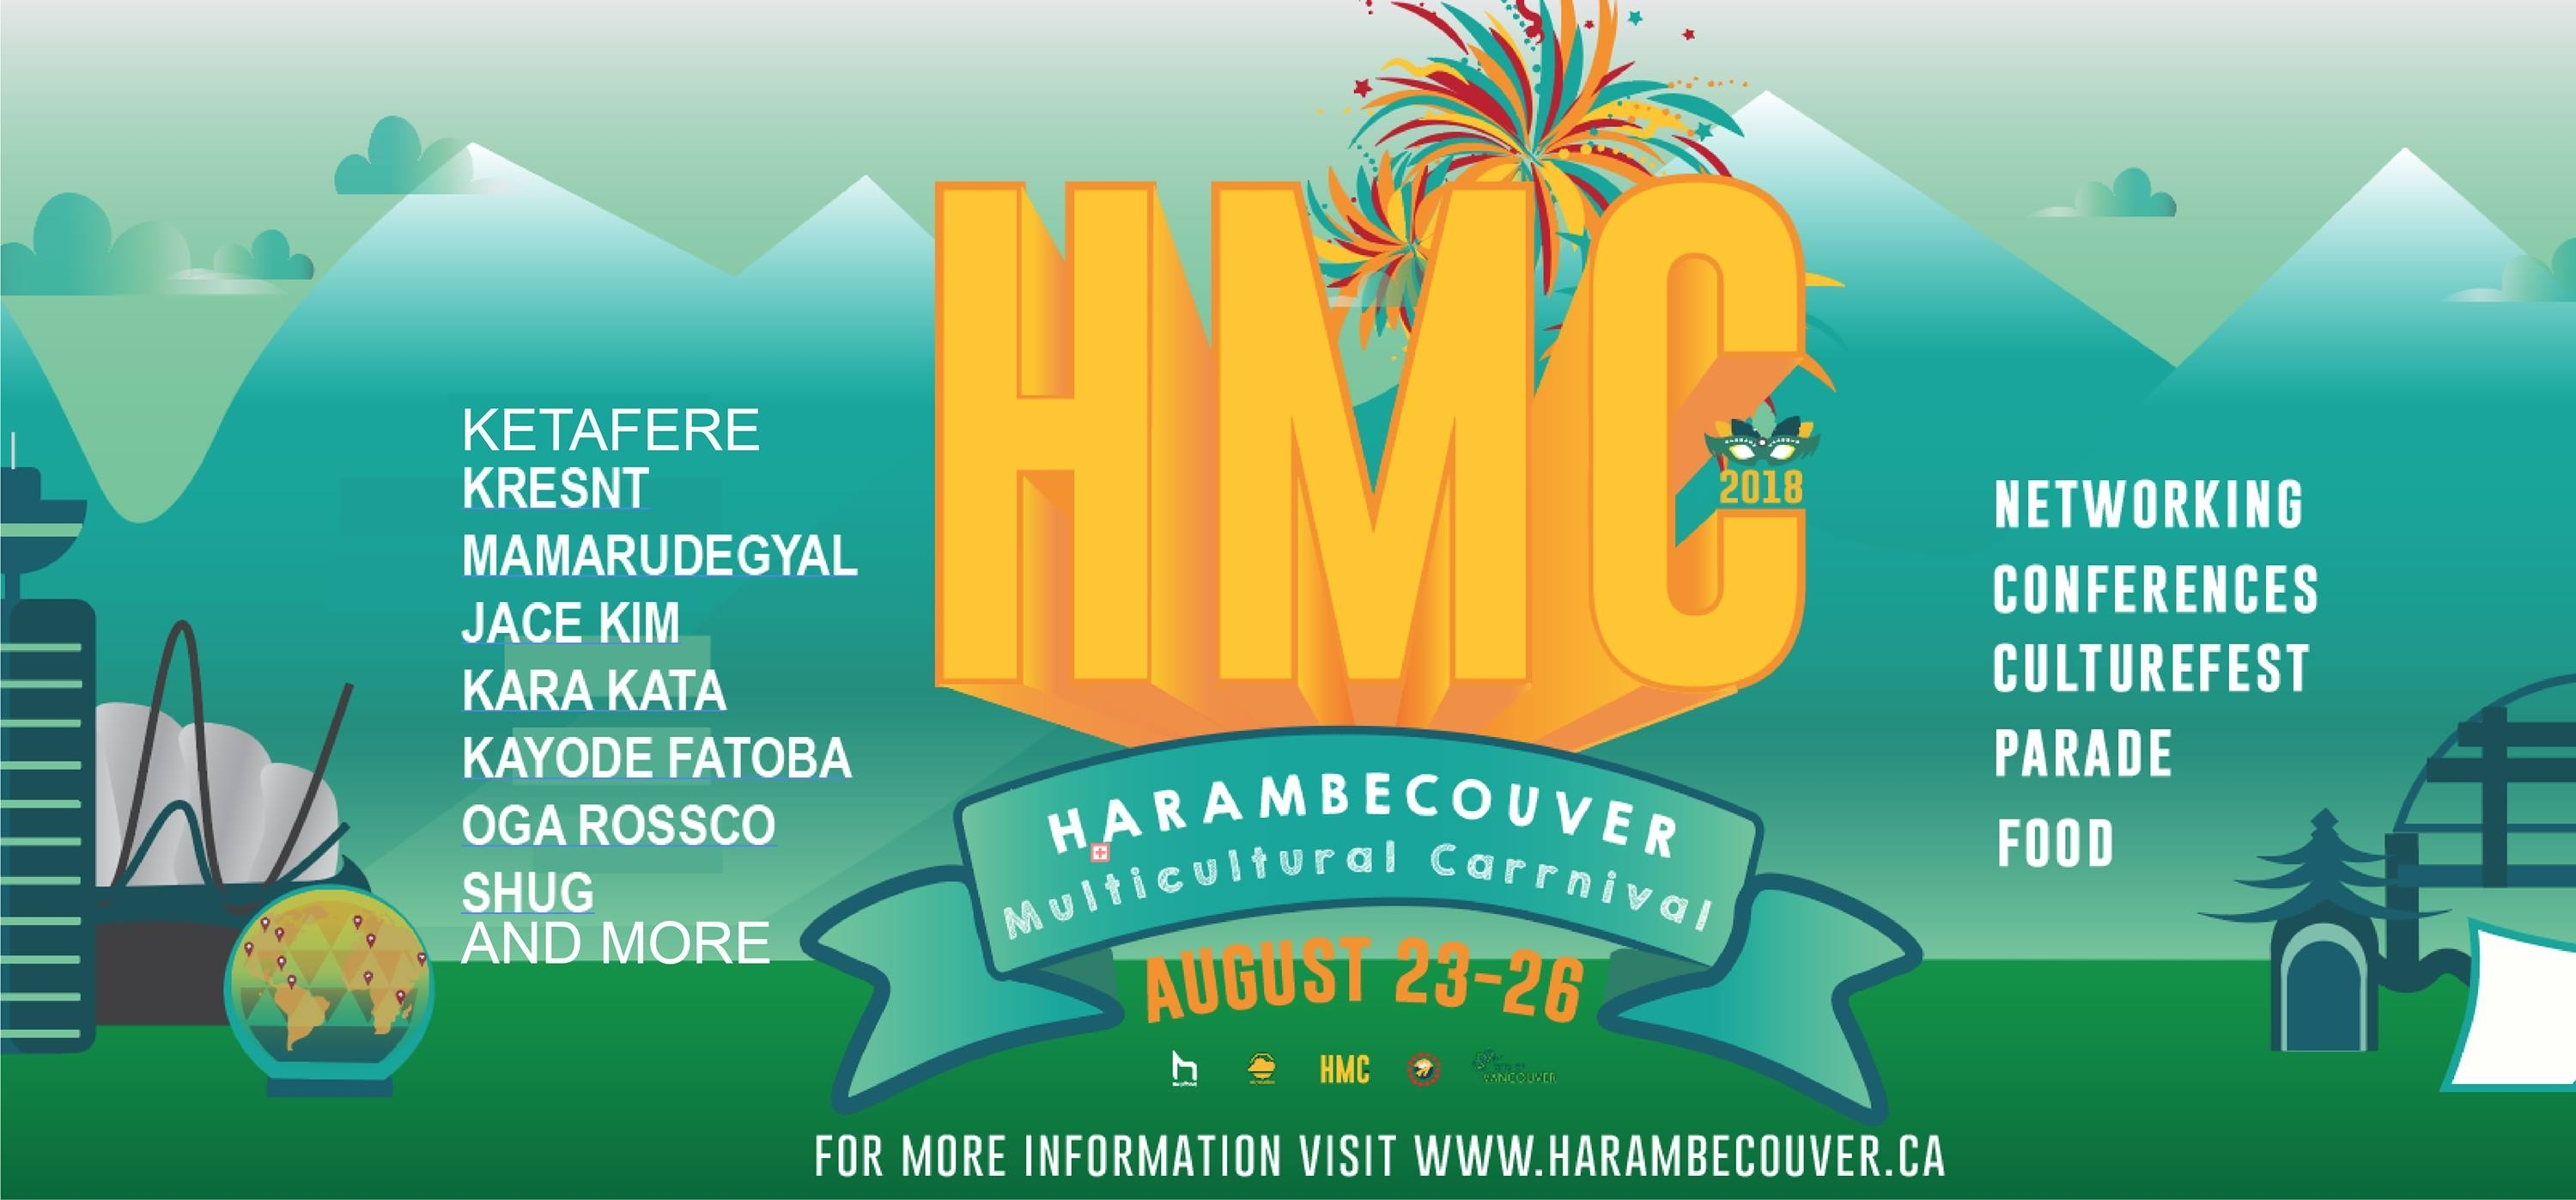 Harambecouver Multicultural Carnival   Wilderness Committee